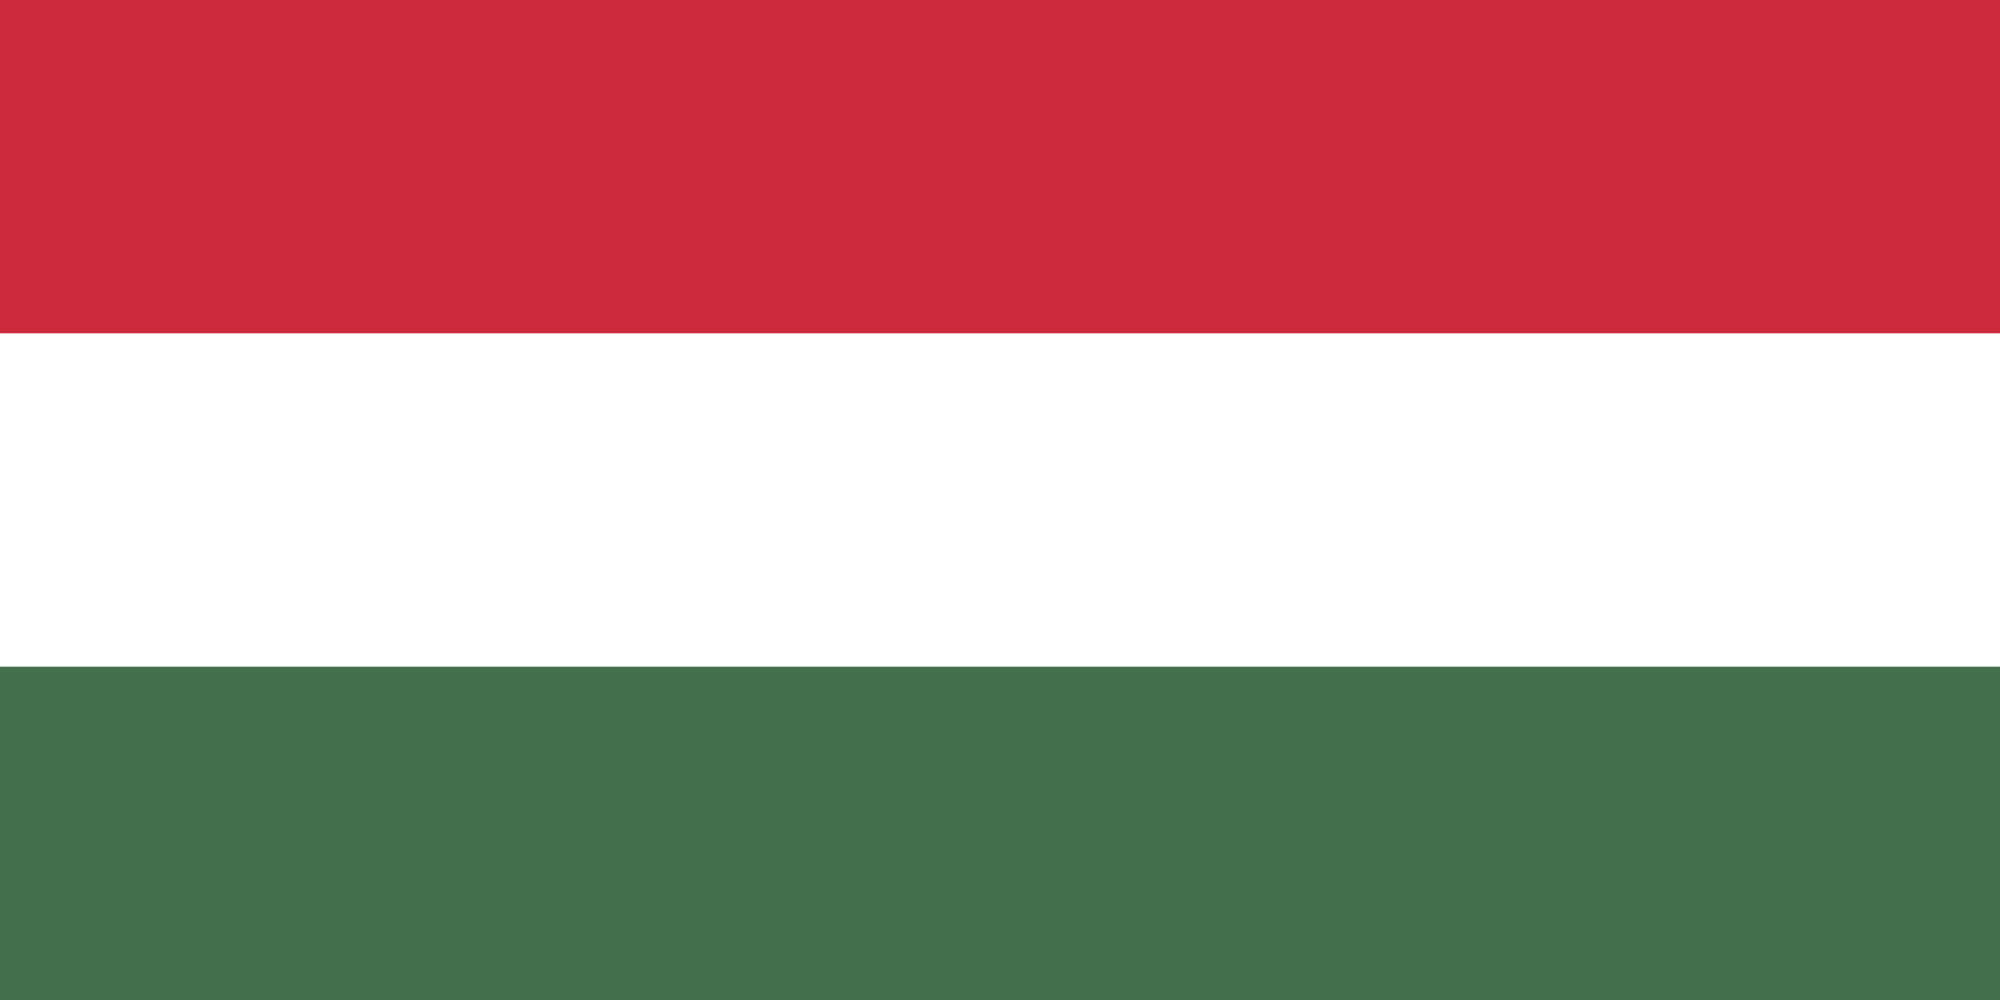 Flag_of_Hungary.svg